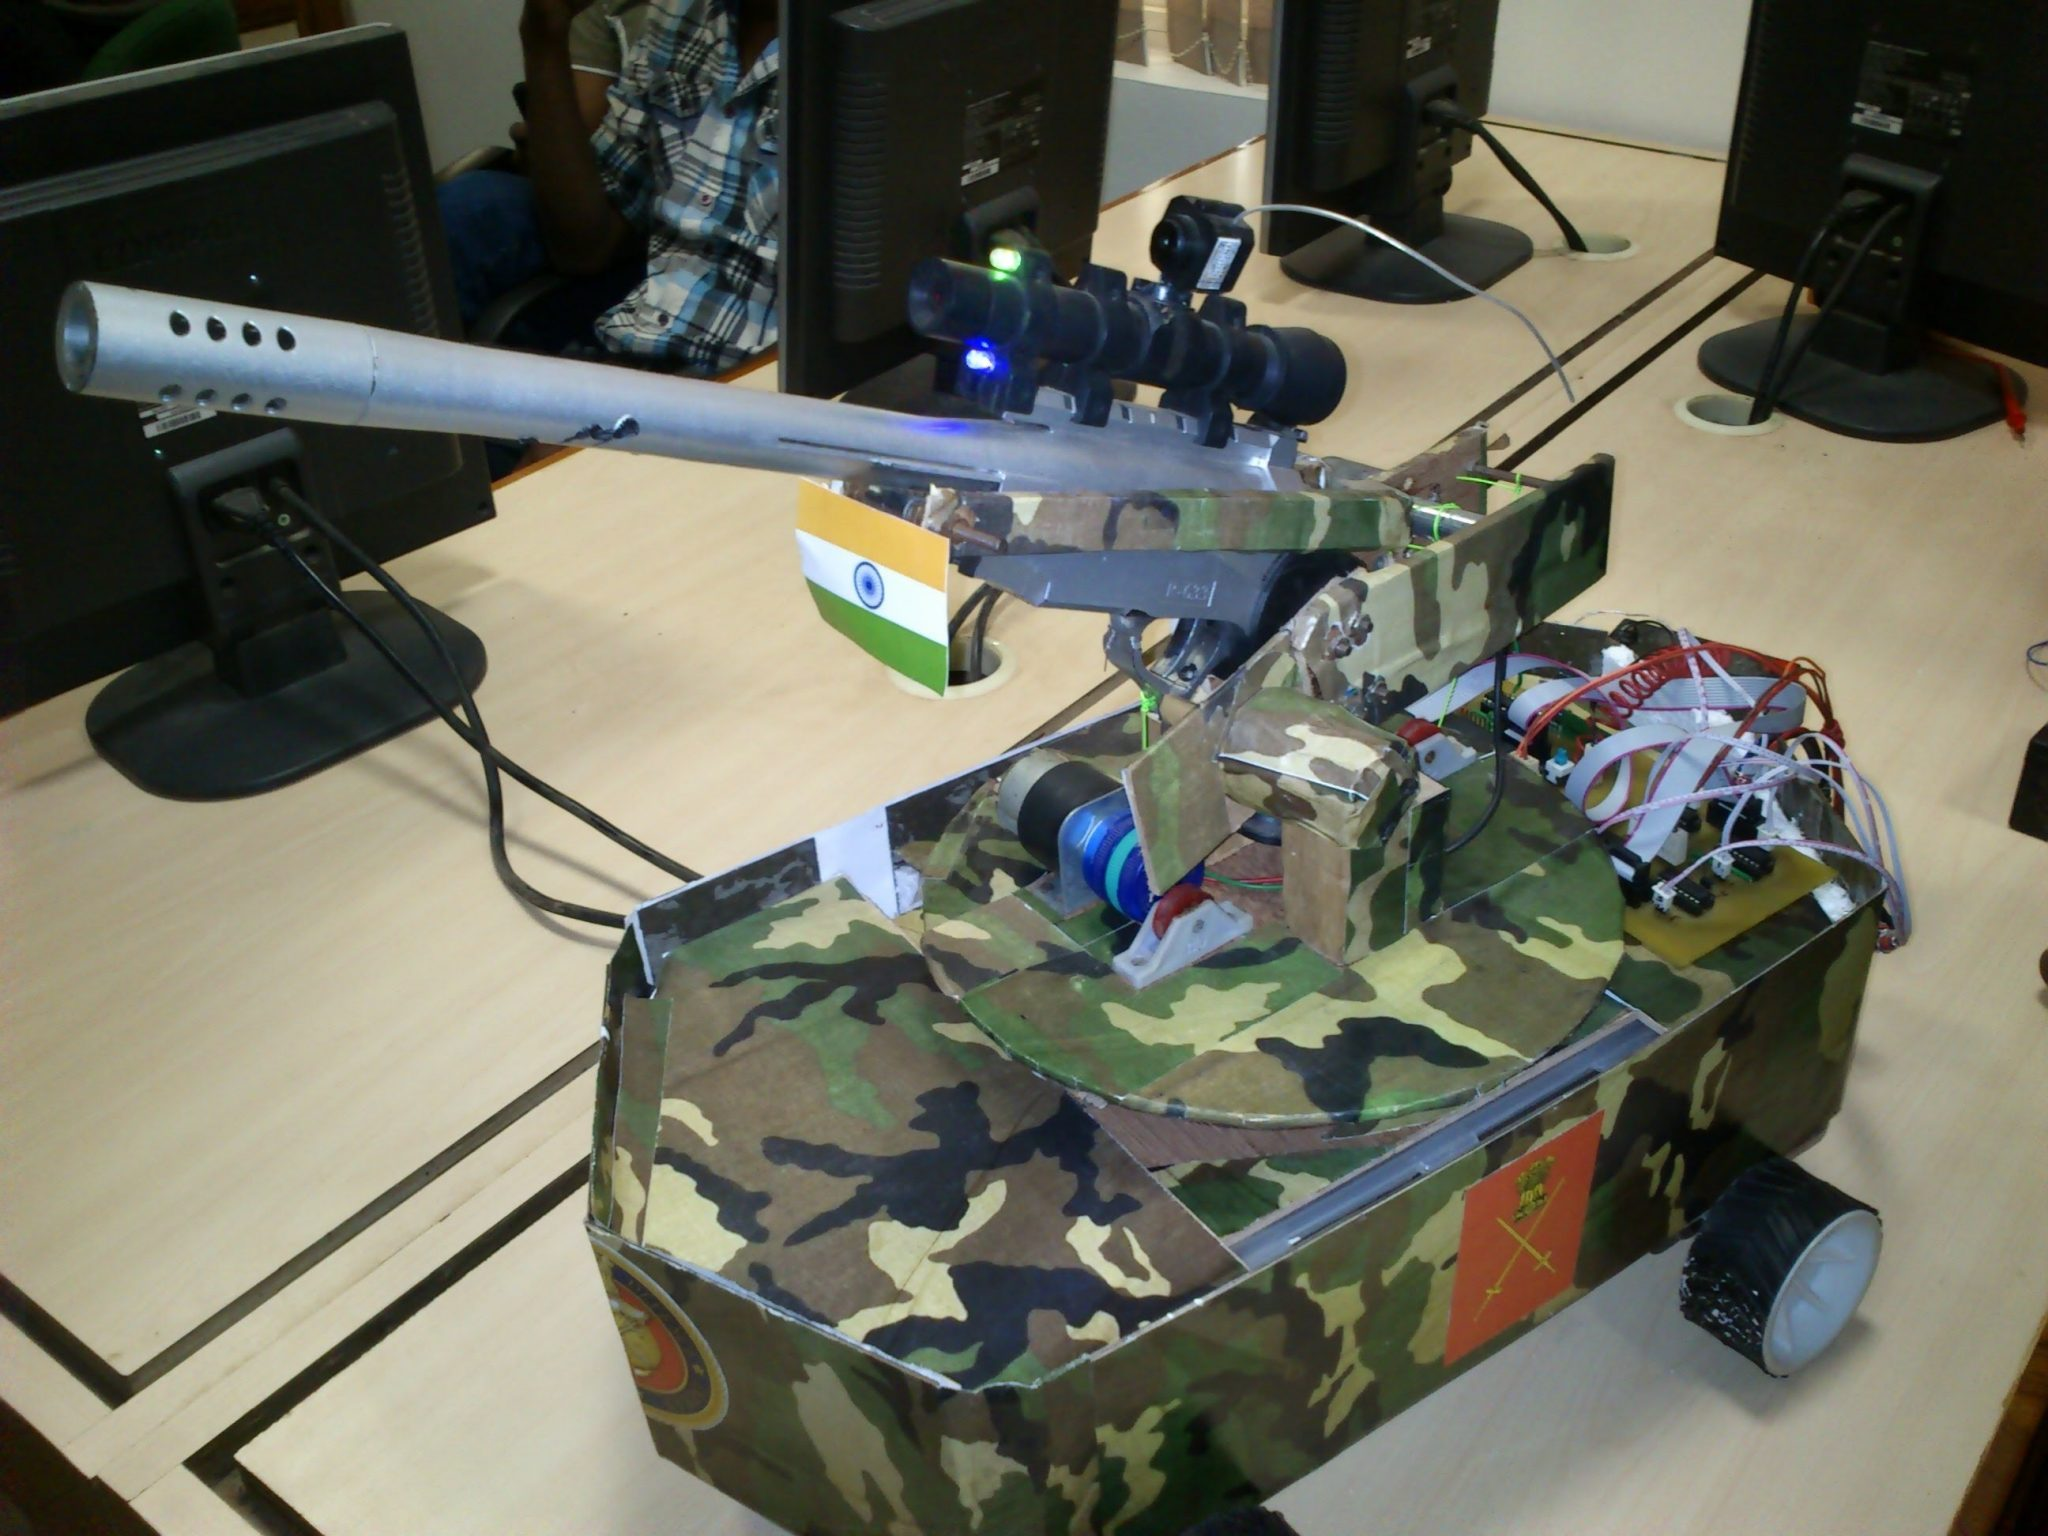 India considering military usage of Artificial Intelligence (AI) for National Security